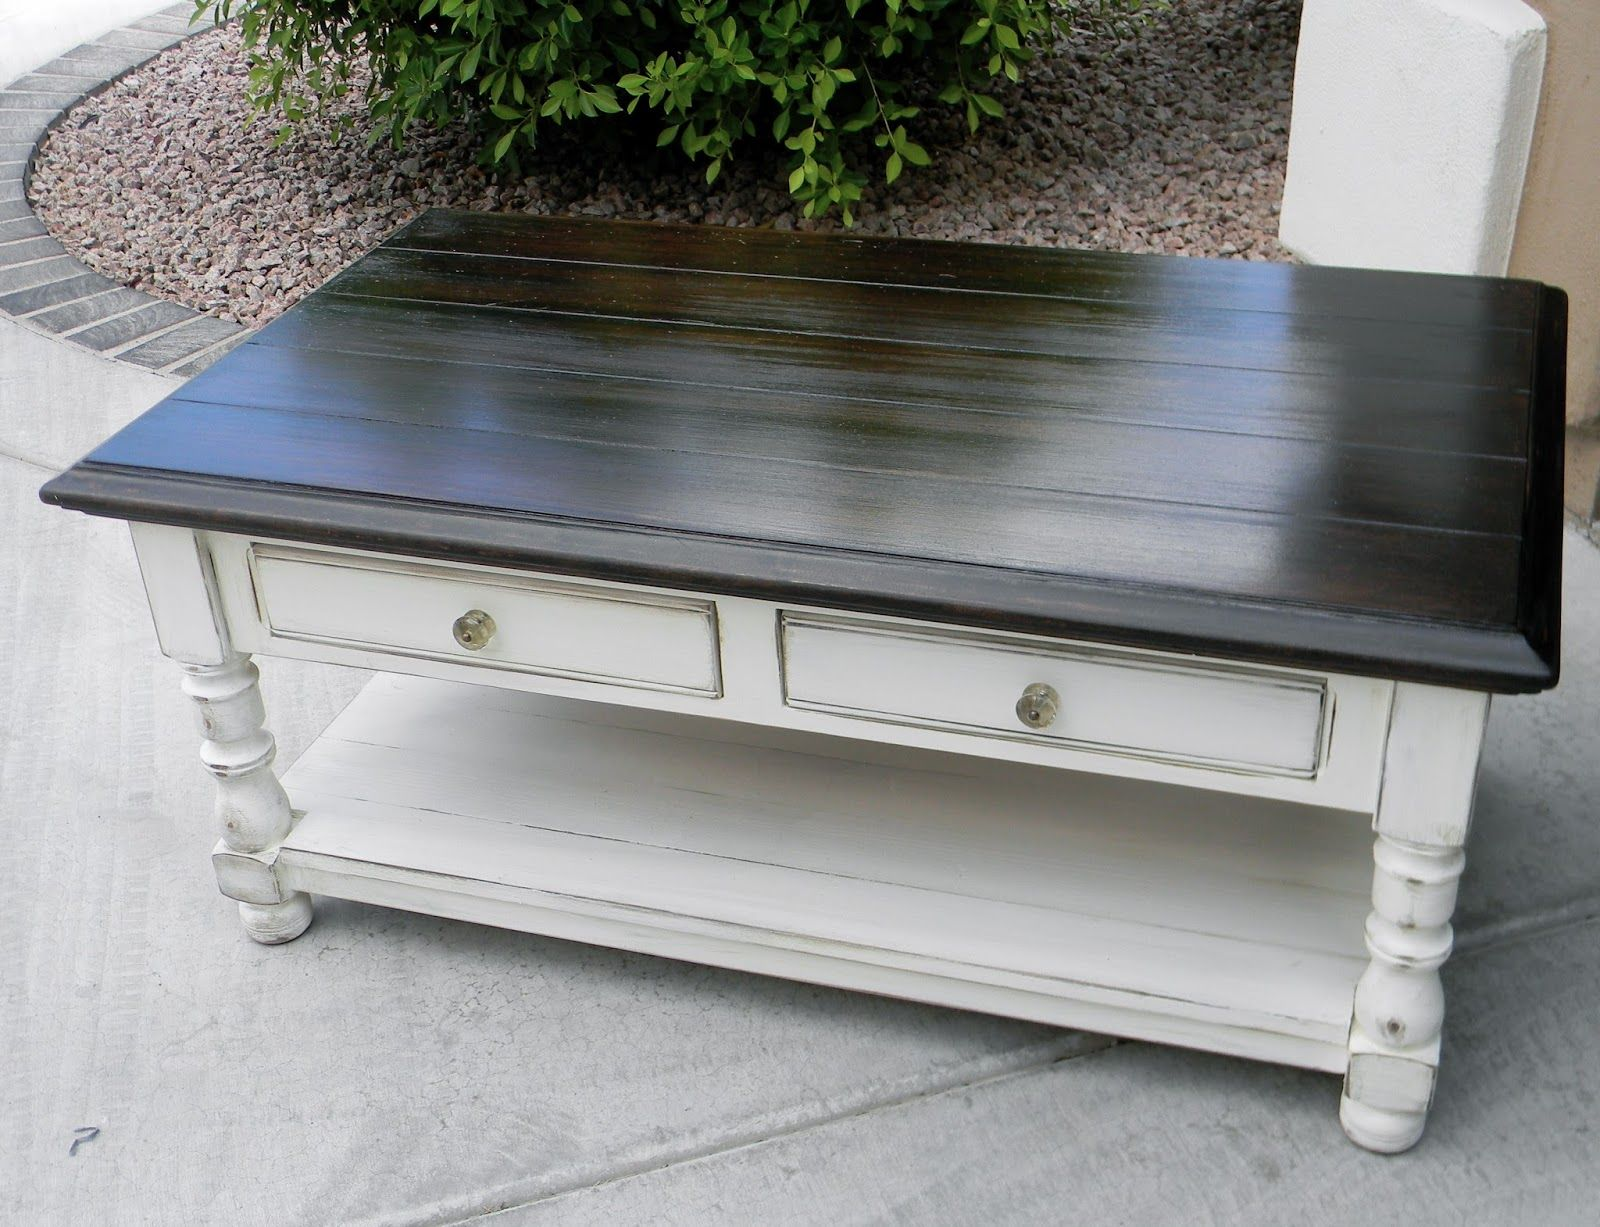 5 ideas for a do it yourself coffee table let 39 s do it refinish coffee tables coffee and Do it yourself coffee table